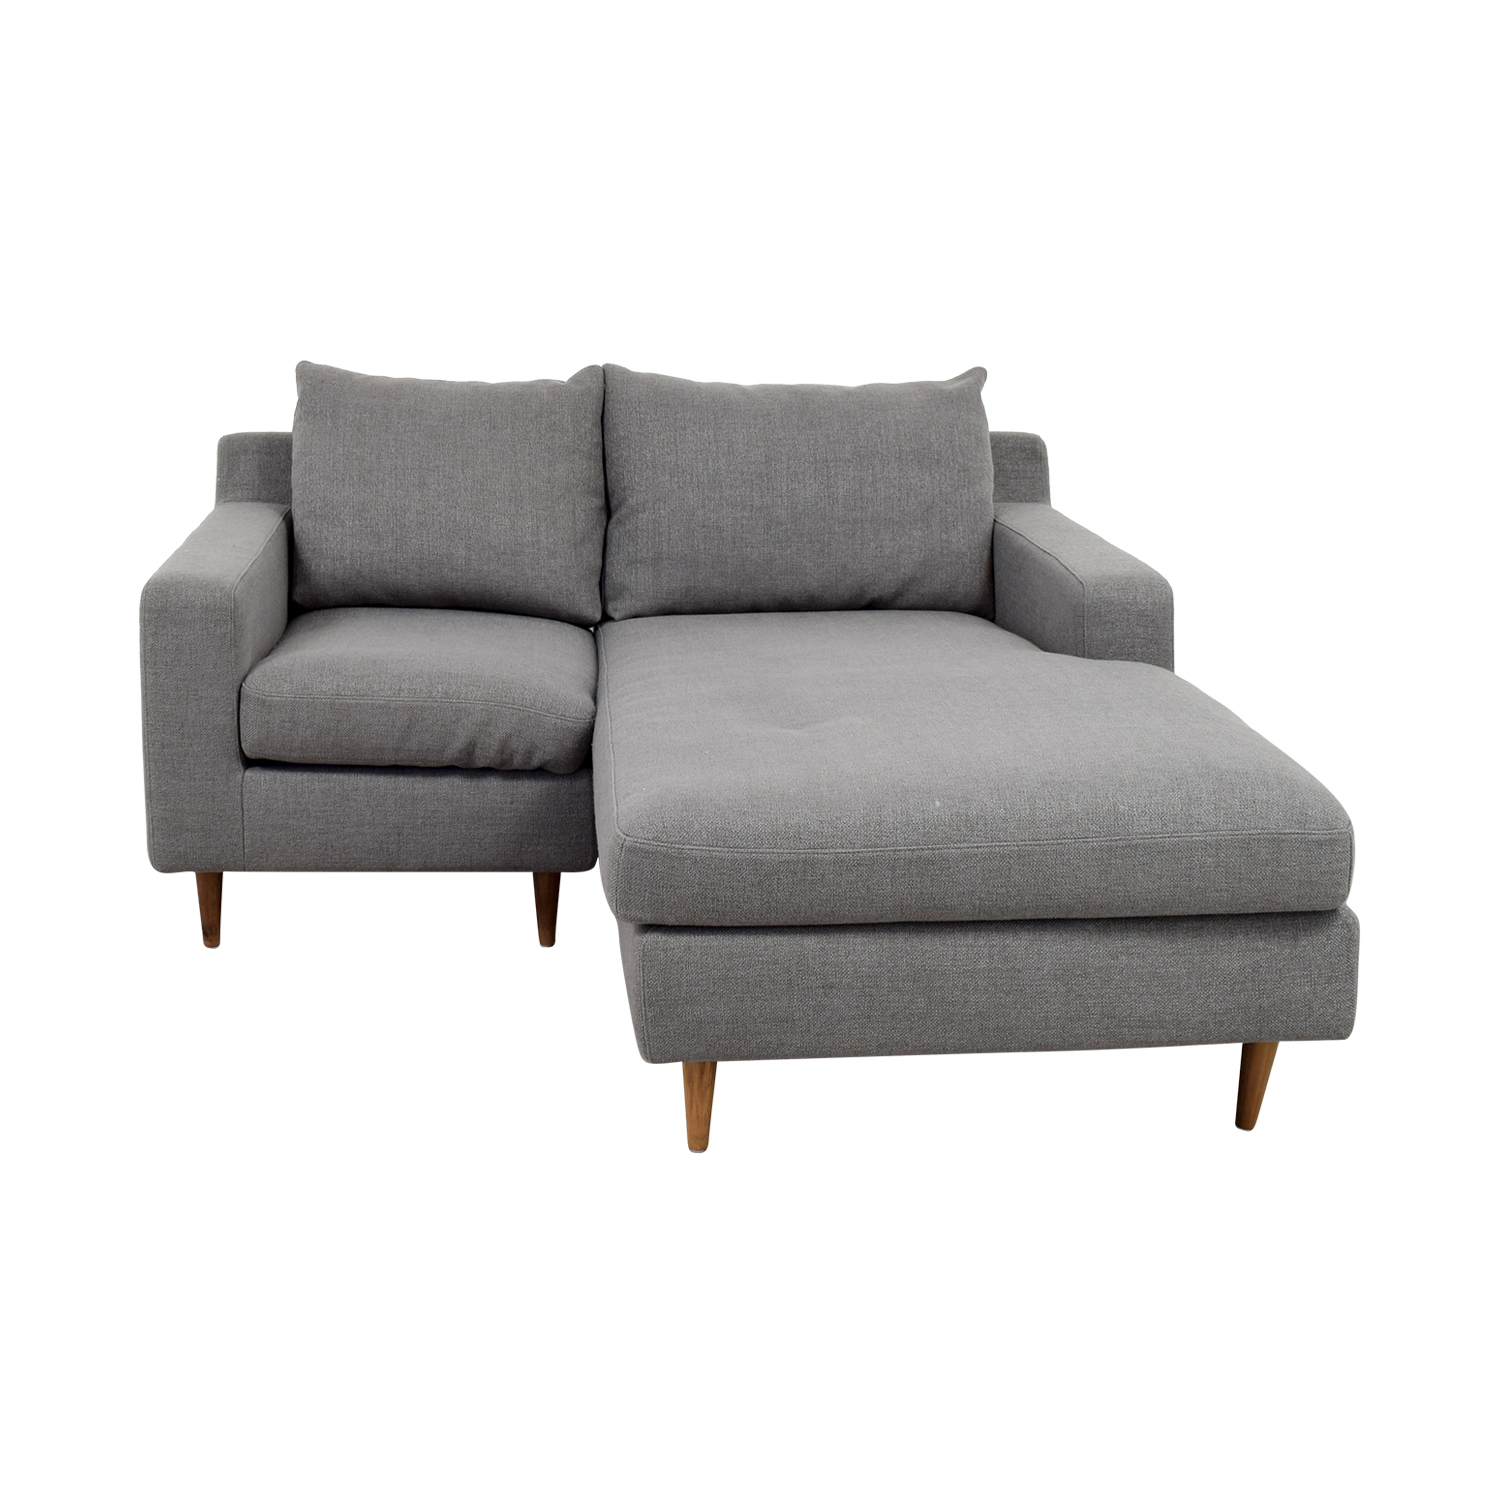 Interior Define Interior Define Custom Grey Loveseat with Chaise discount